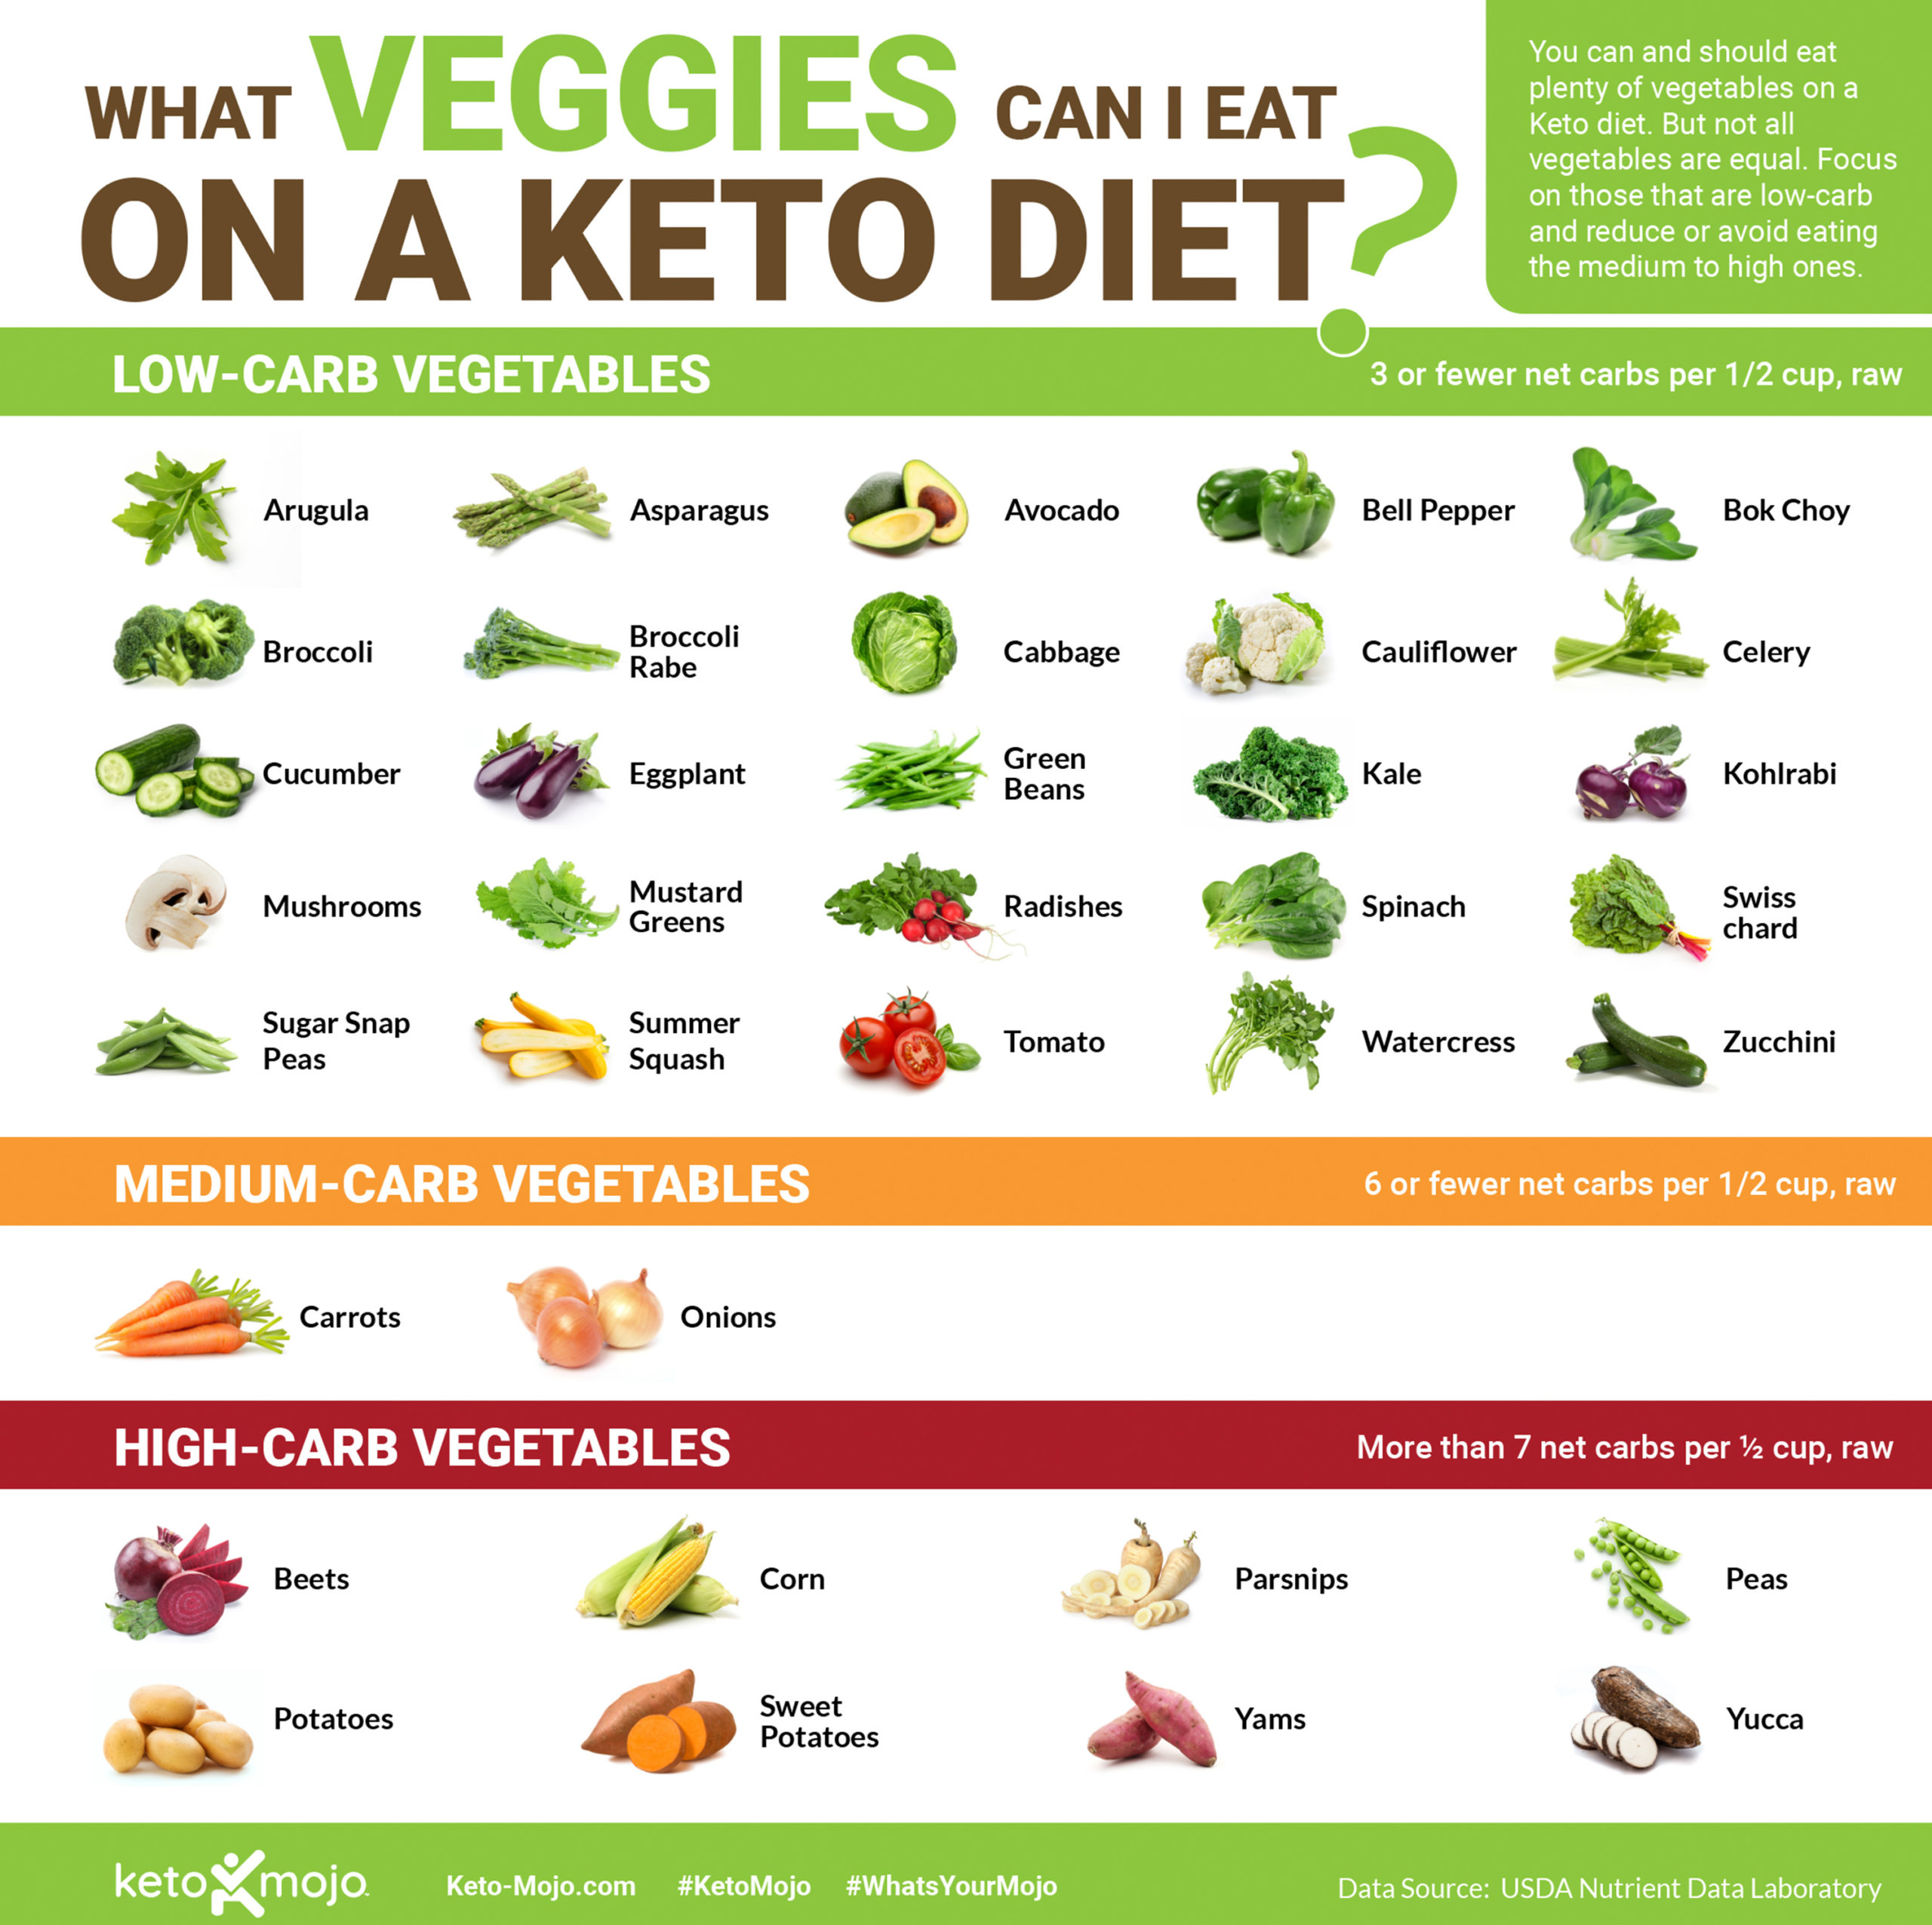 keto-mojo what veggies can i eat on a keto diet